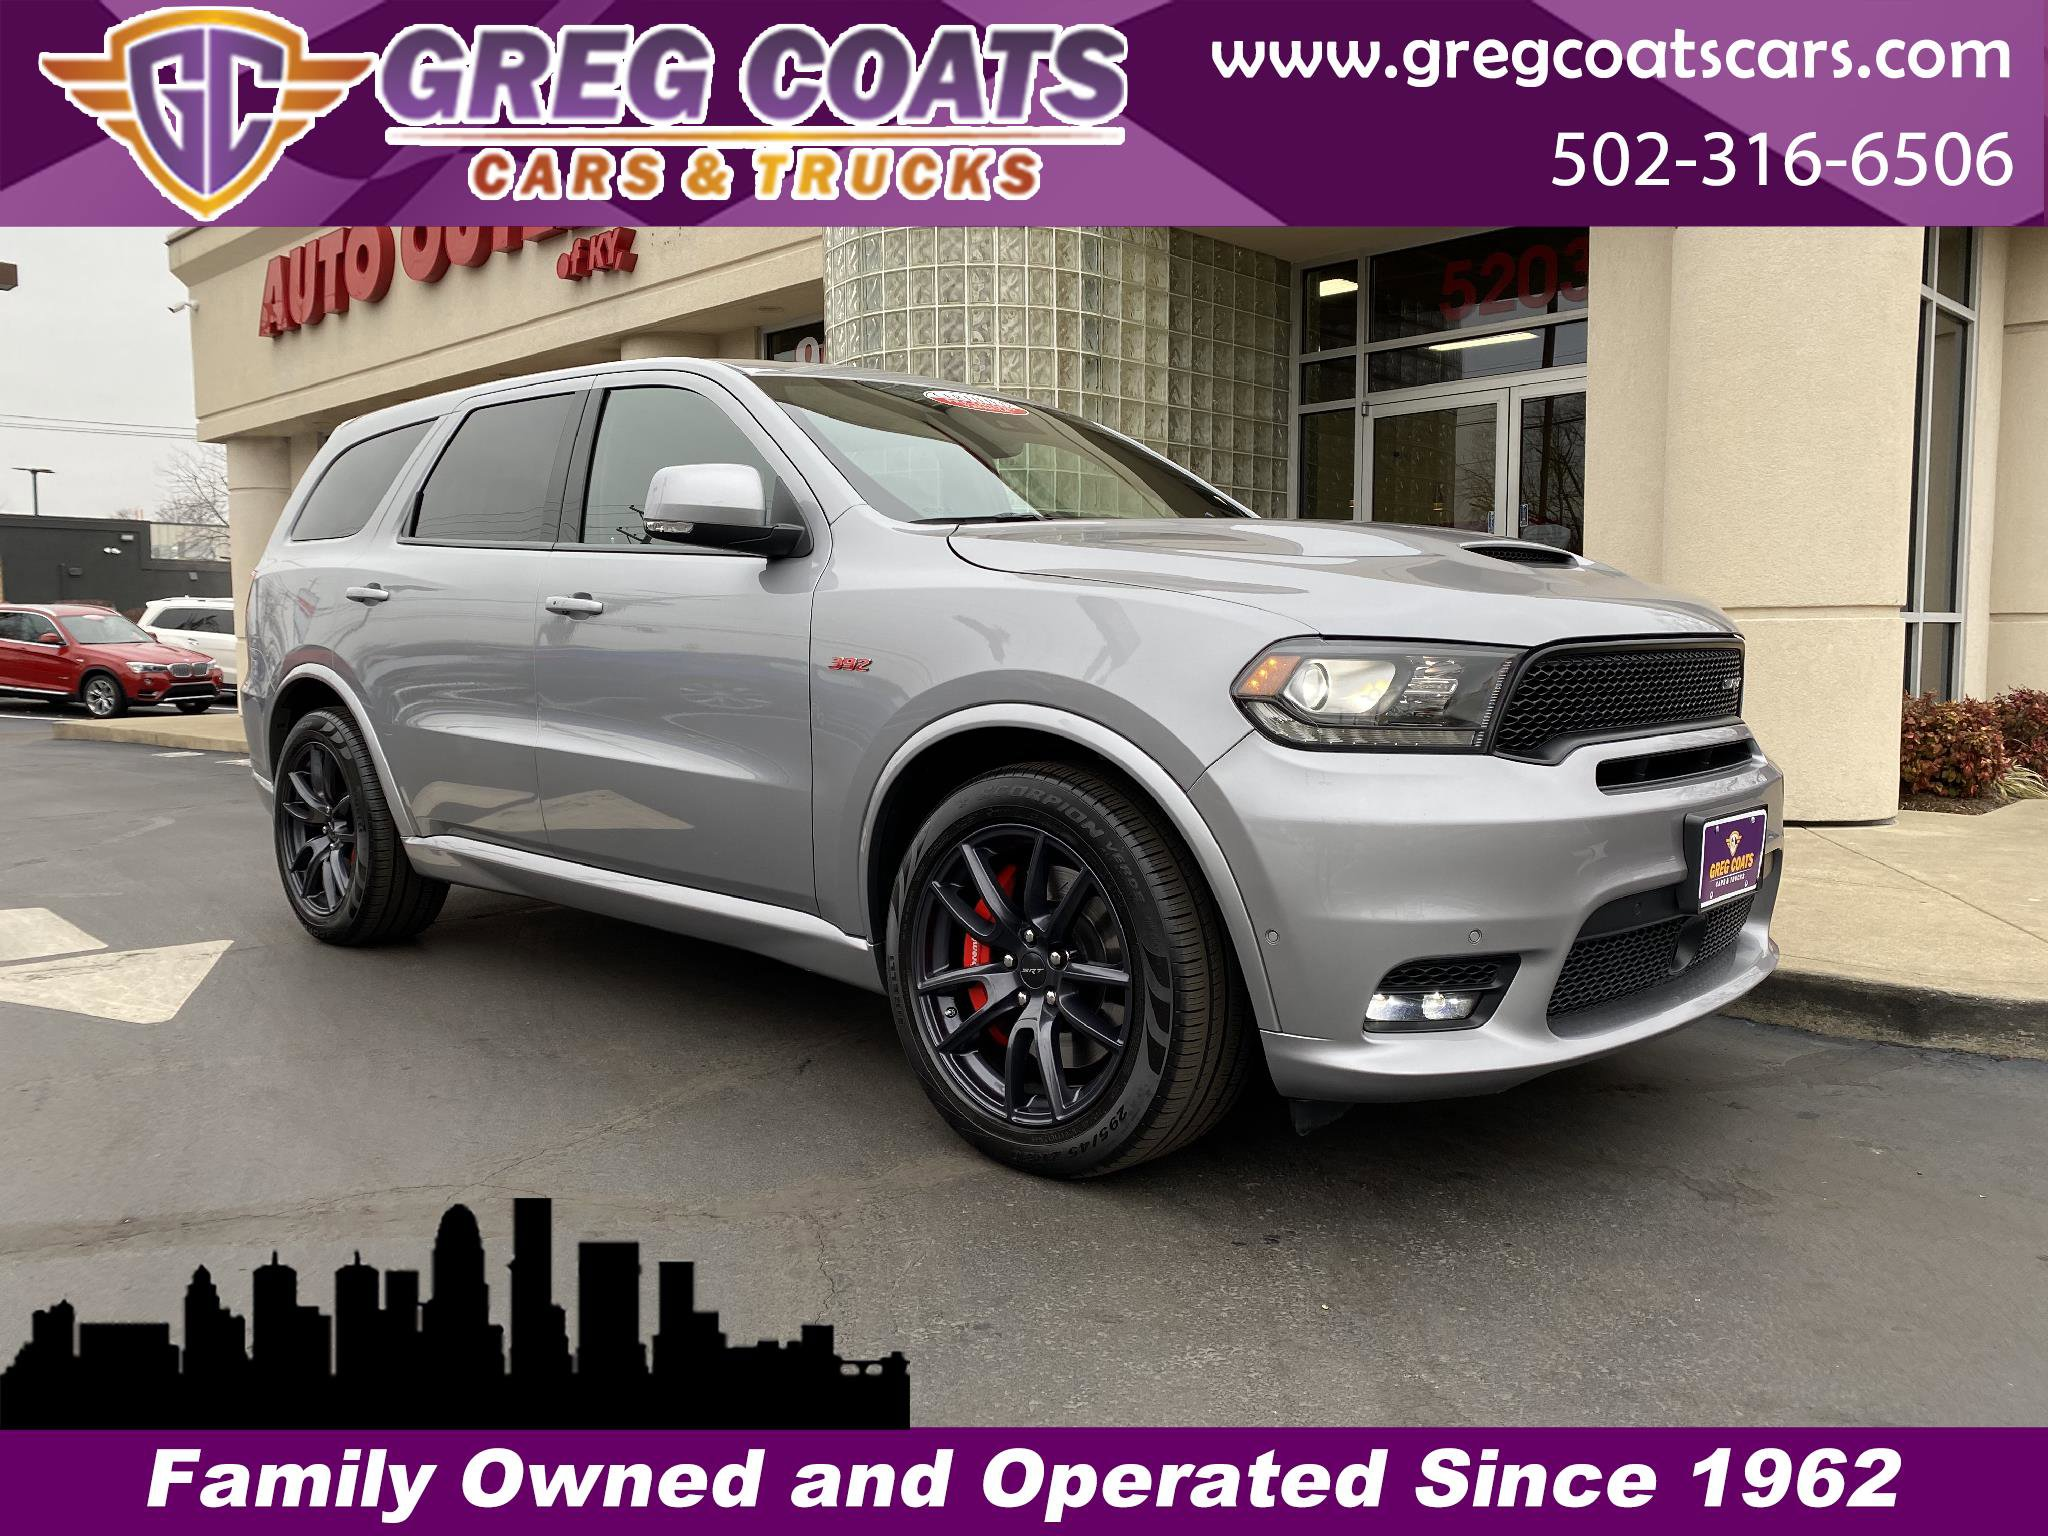 2018 Dodge Durango AWD SRT w/ TECHNOLOGY GROUP image